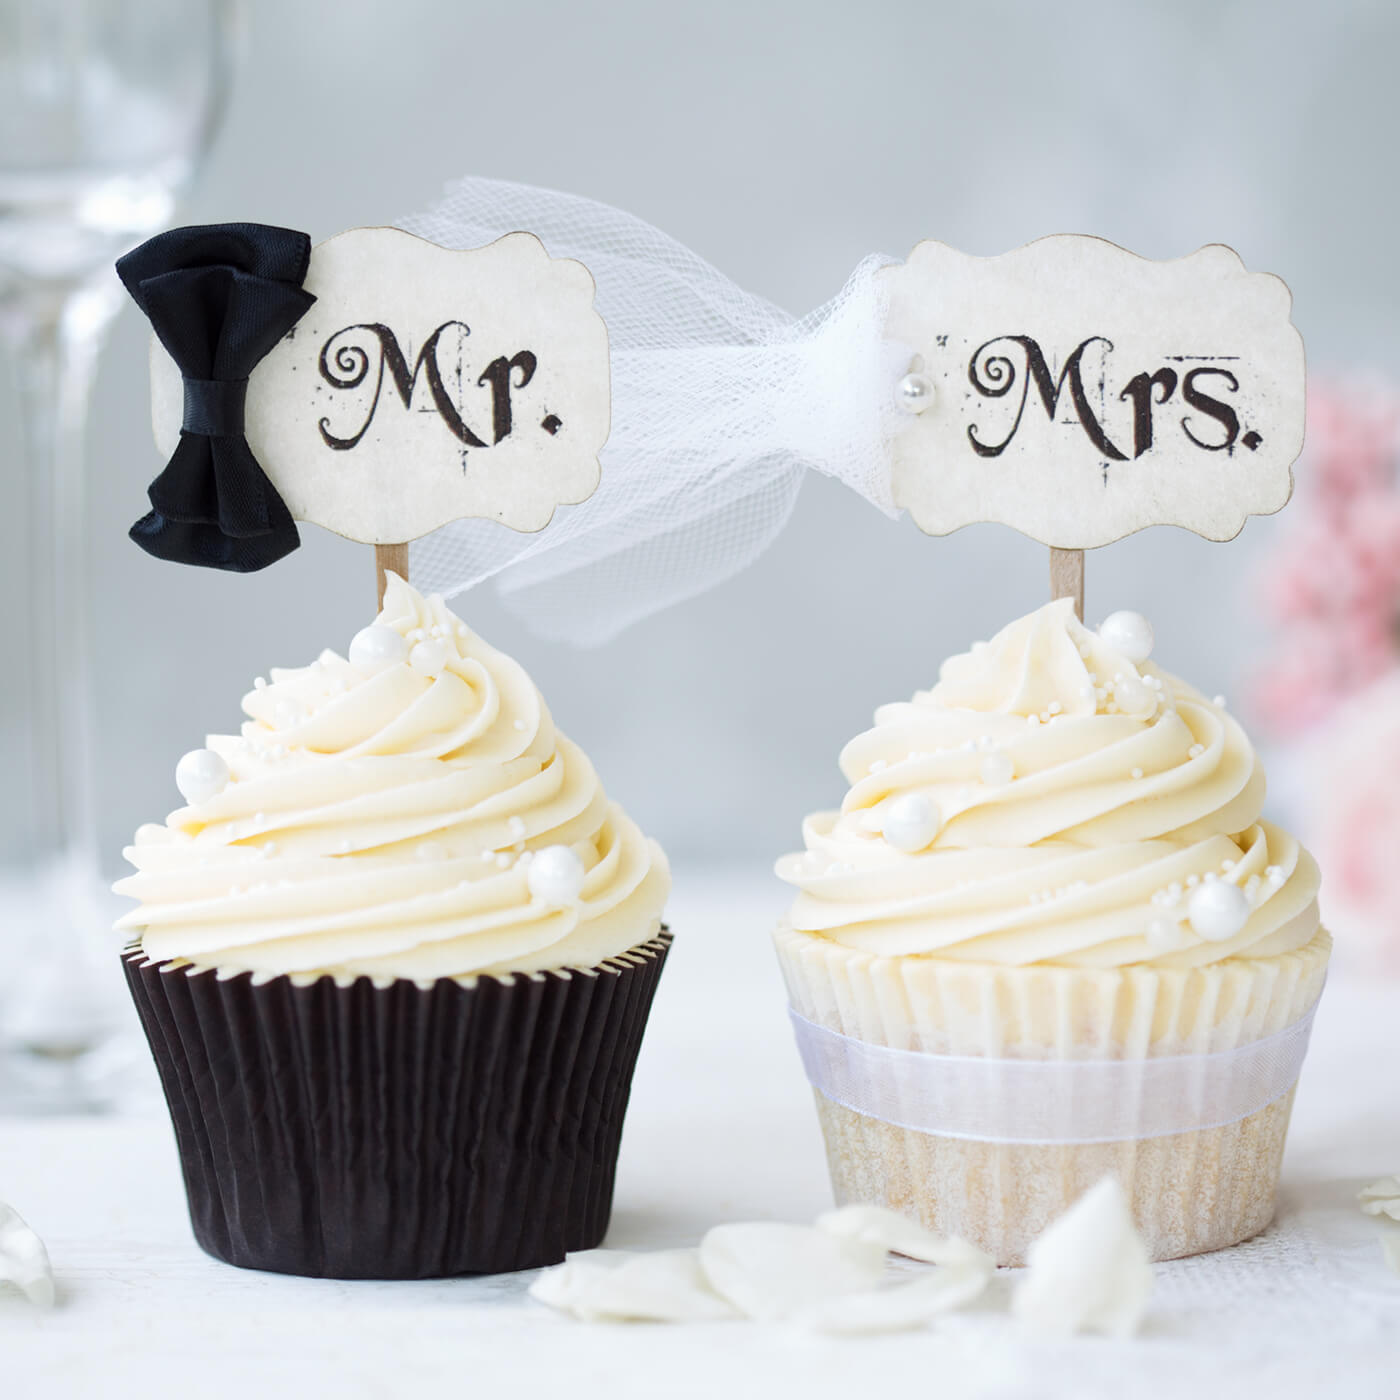 wedding-cupcake-ideas-1.jpg